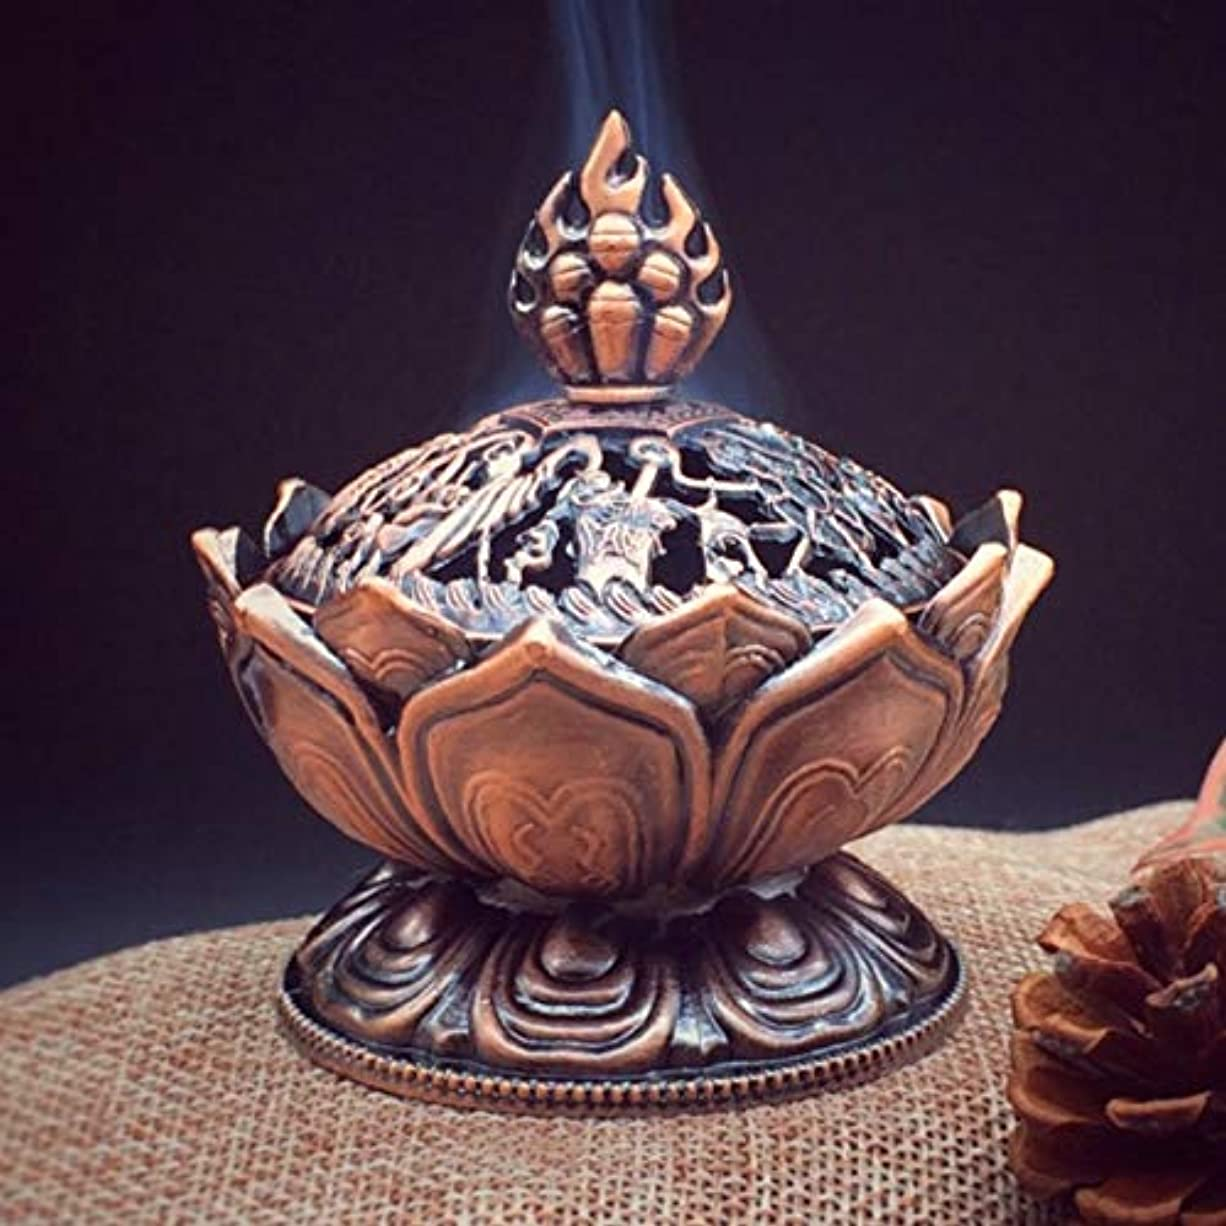 セントメロン広くHoly Tibetan Lotus Designed Incense Burner Zinc Alloy Bronze Mini Incense Burner Incensory Metal Craft Home Decor